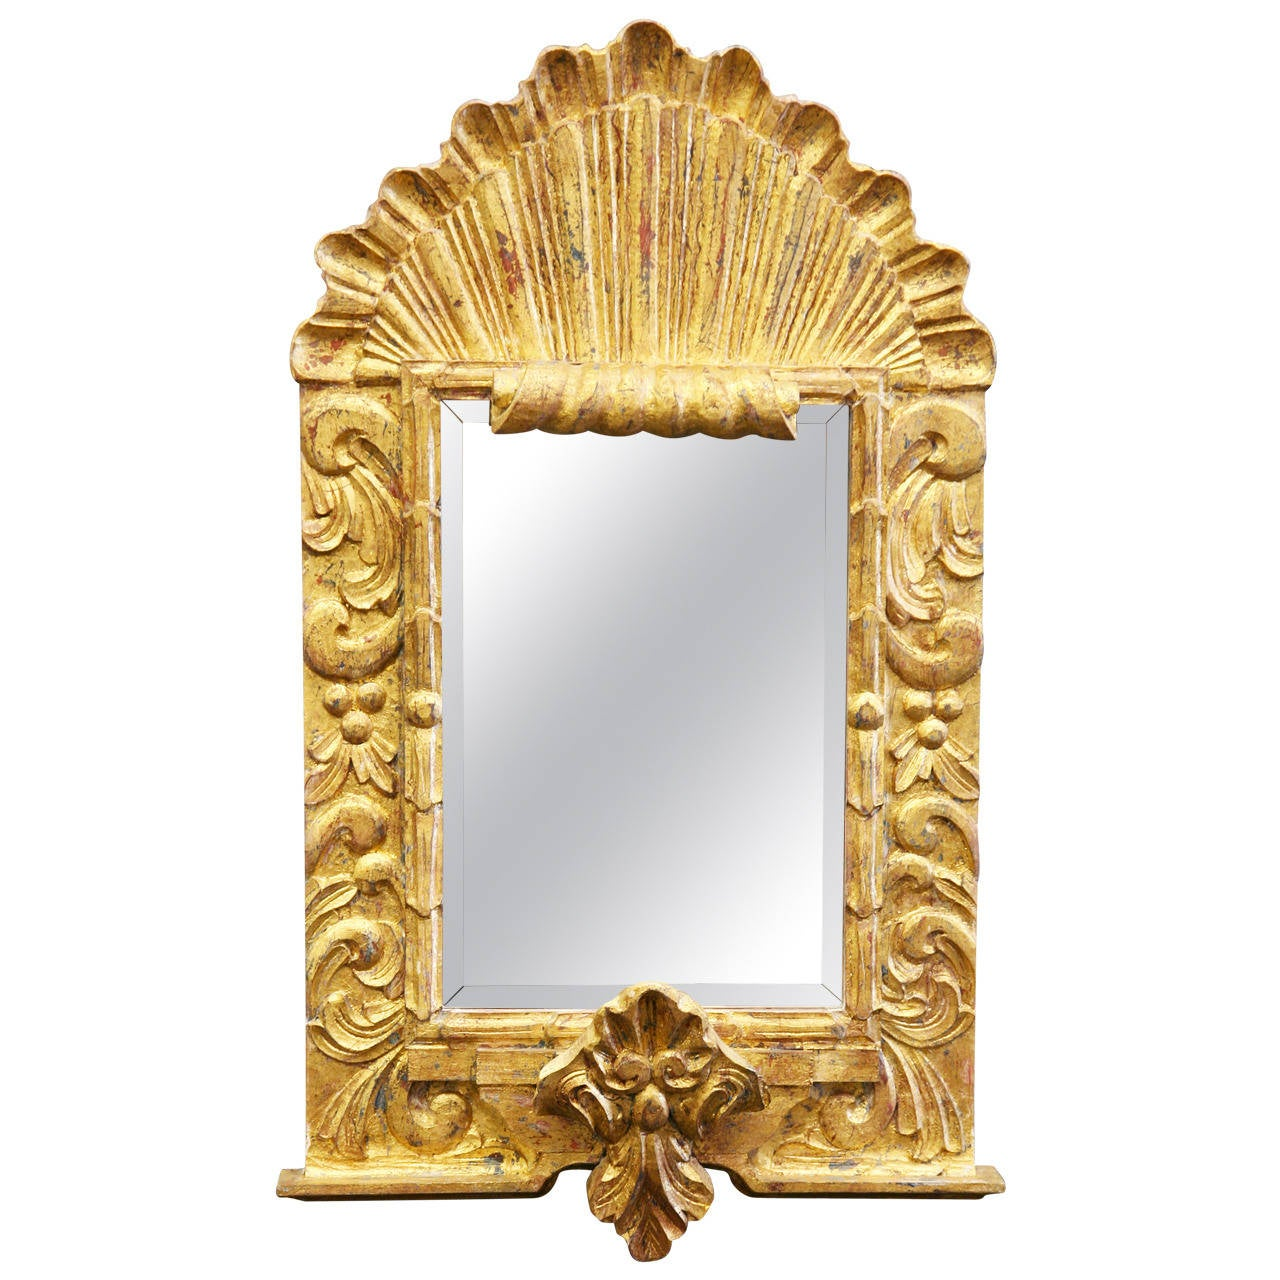 Antique style gilded mirror at 1stdibs for Old style mirror